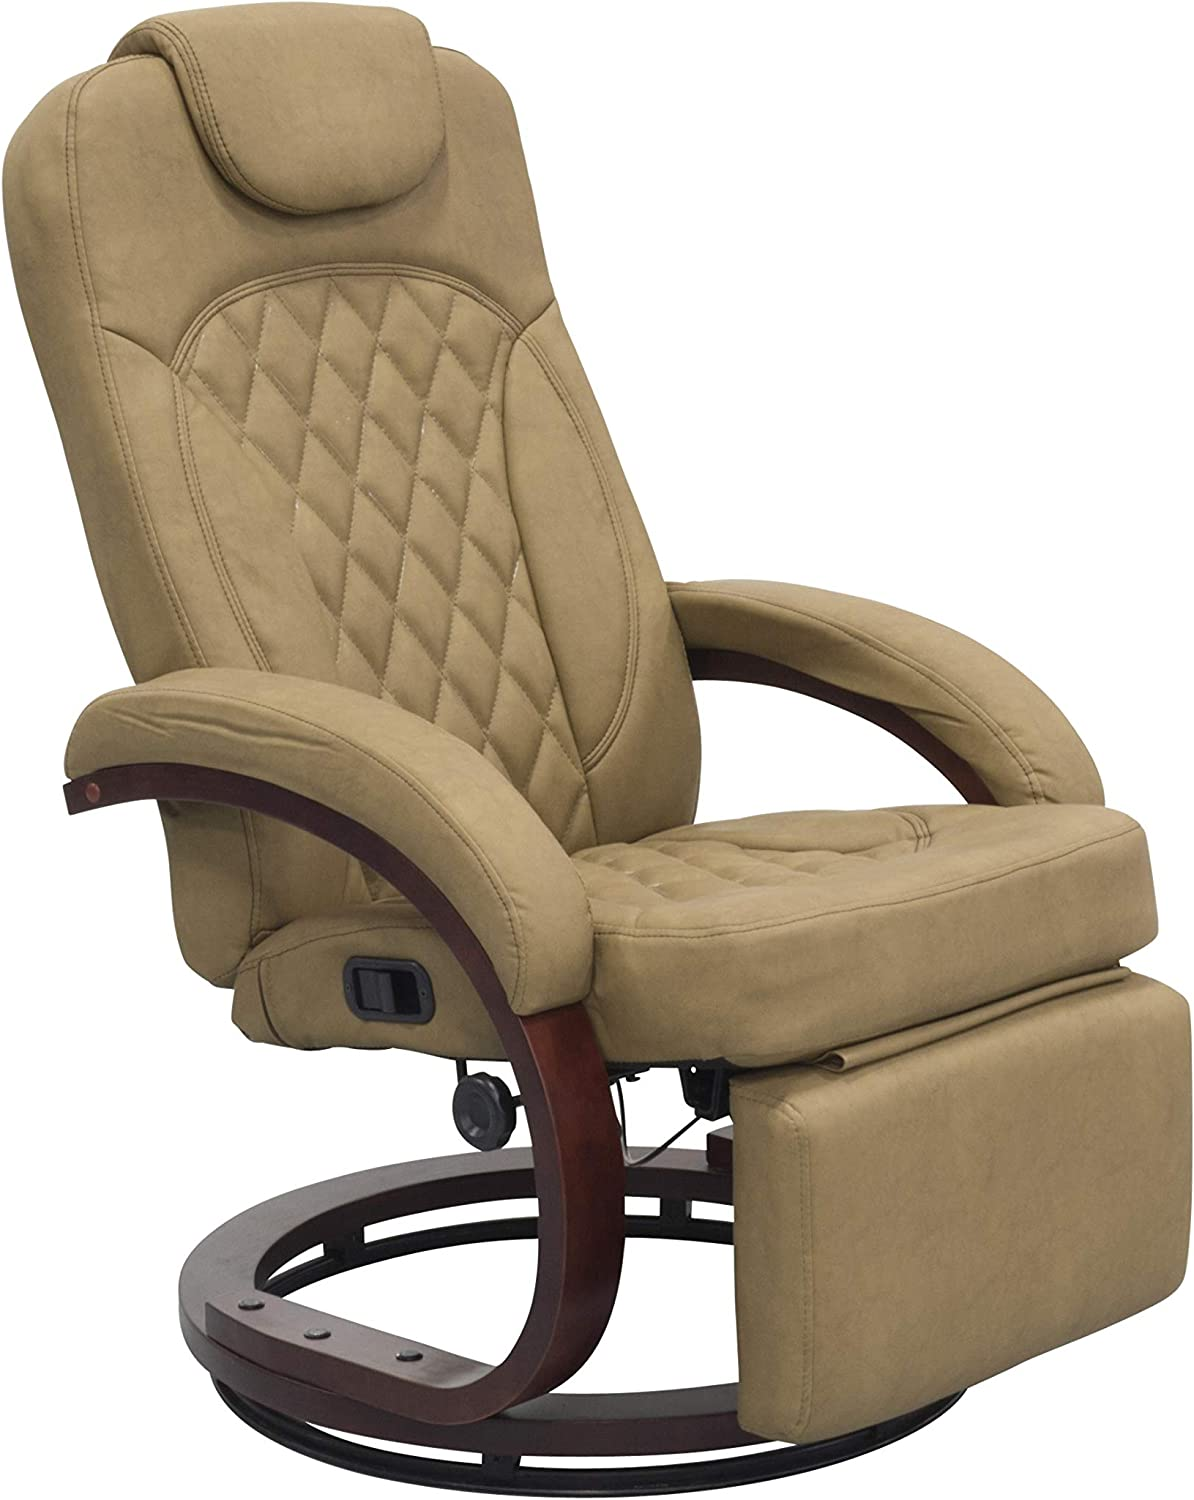 THOMAS PAYNE Euro Recliner Chair with Footrest - Oxford Tan